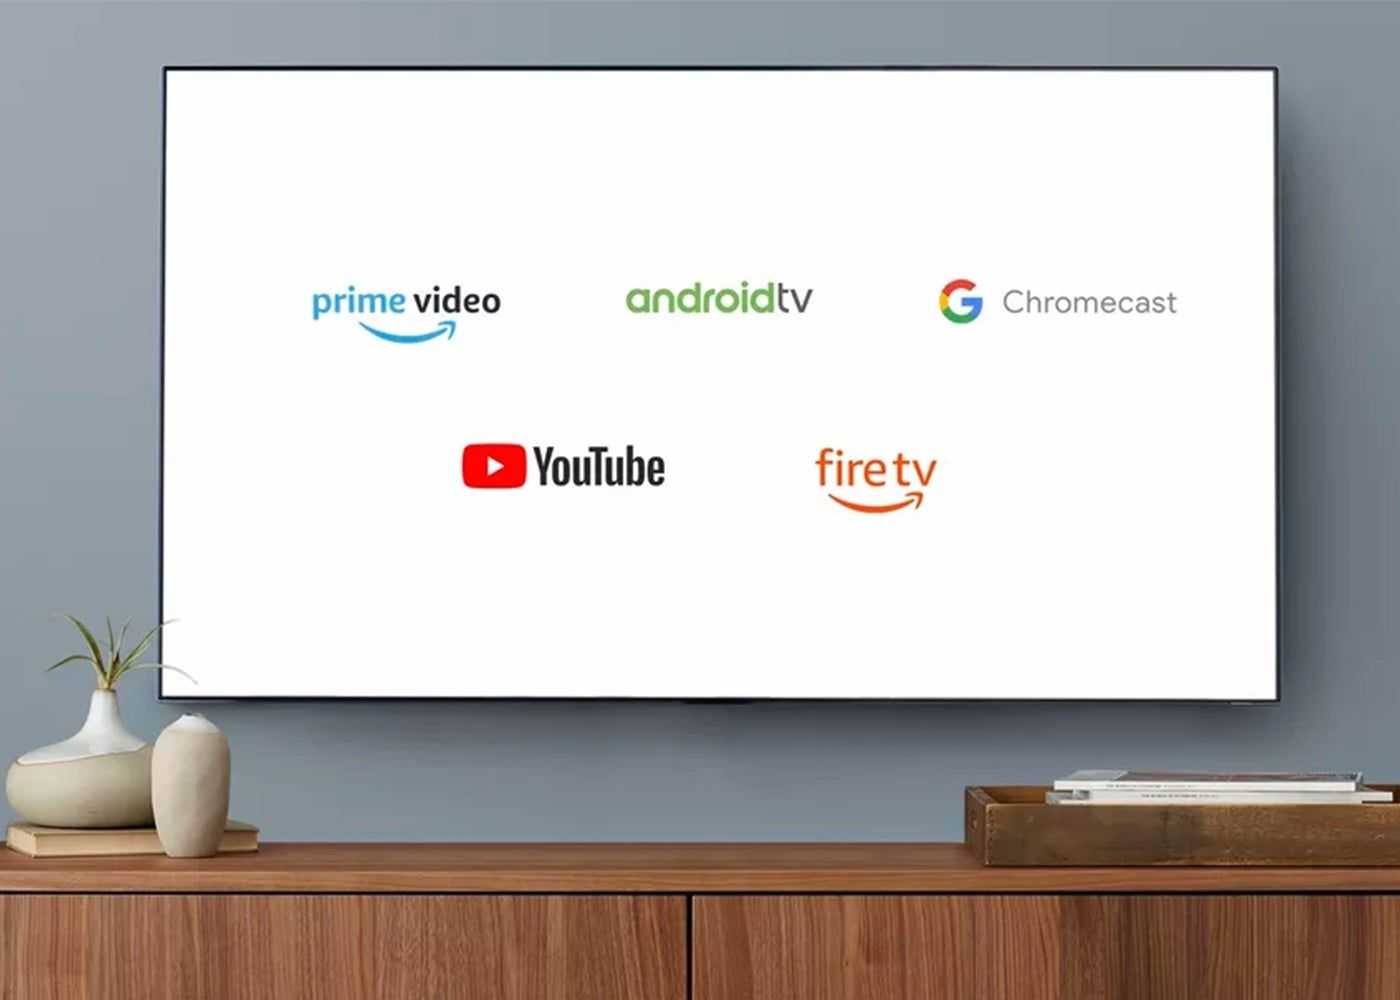 chromecast prime video